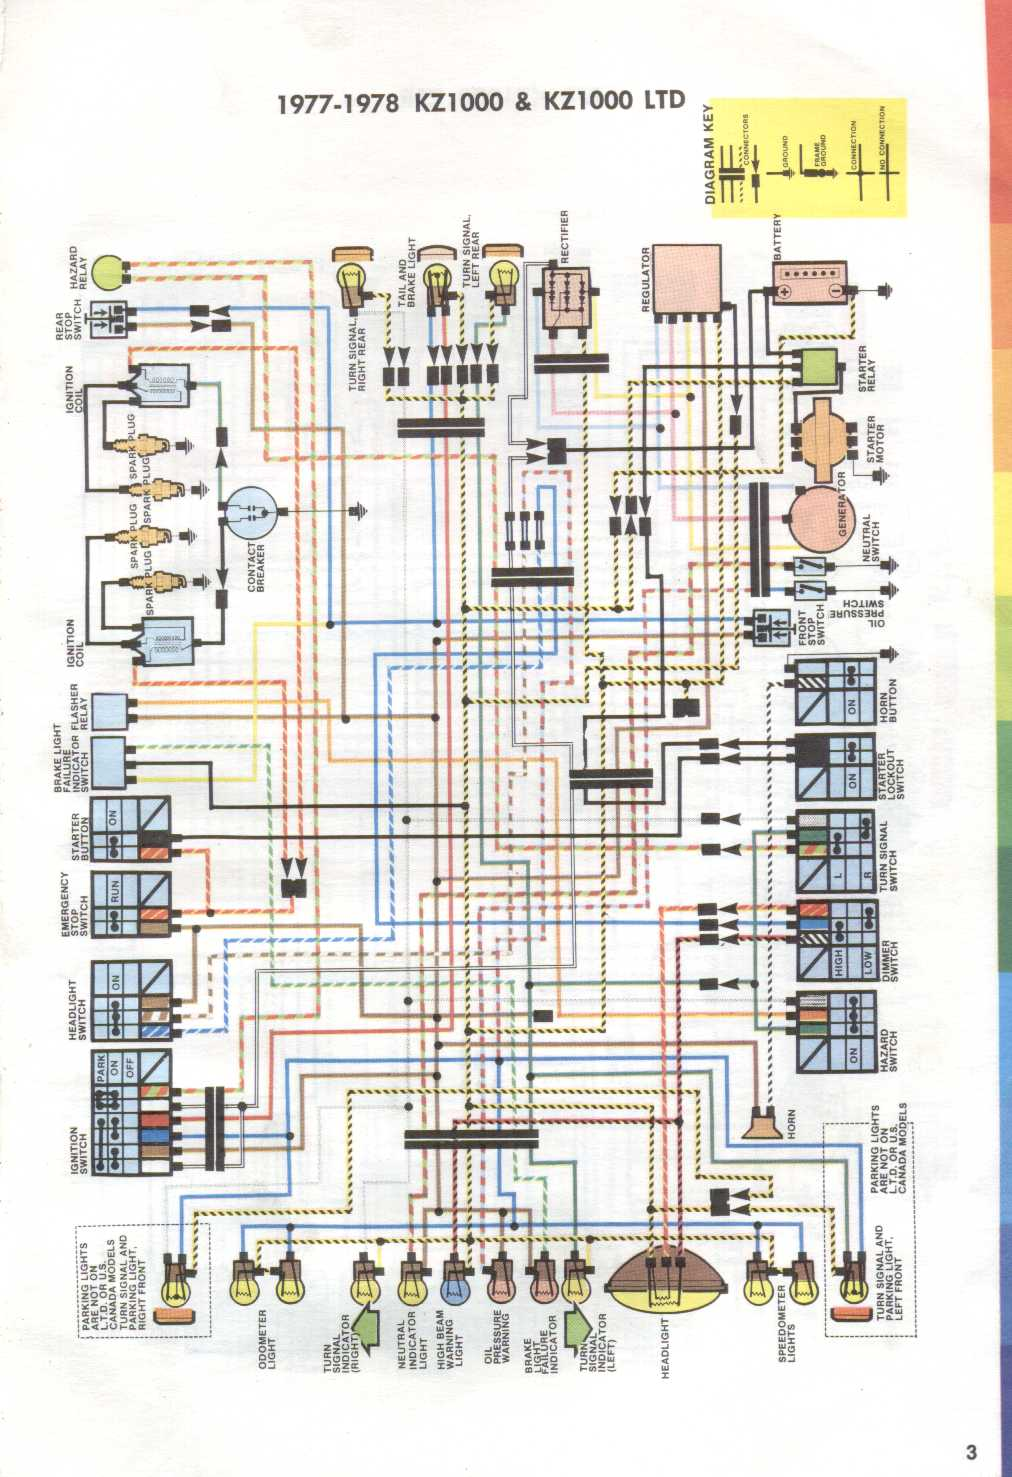 wiring diagram for 1977 1978 kawasaki kz1000 and kz1000ltd evan rh cycles evanfell com 1980 kz1000 wiring diagram kz1000 wiring schematic